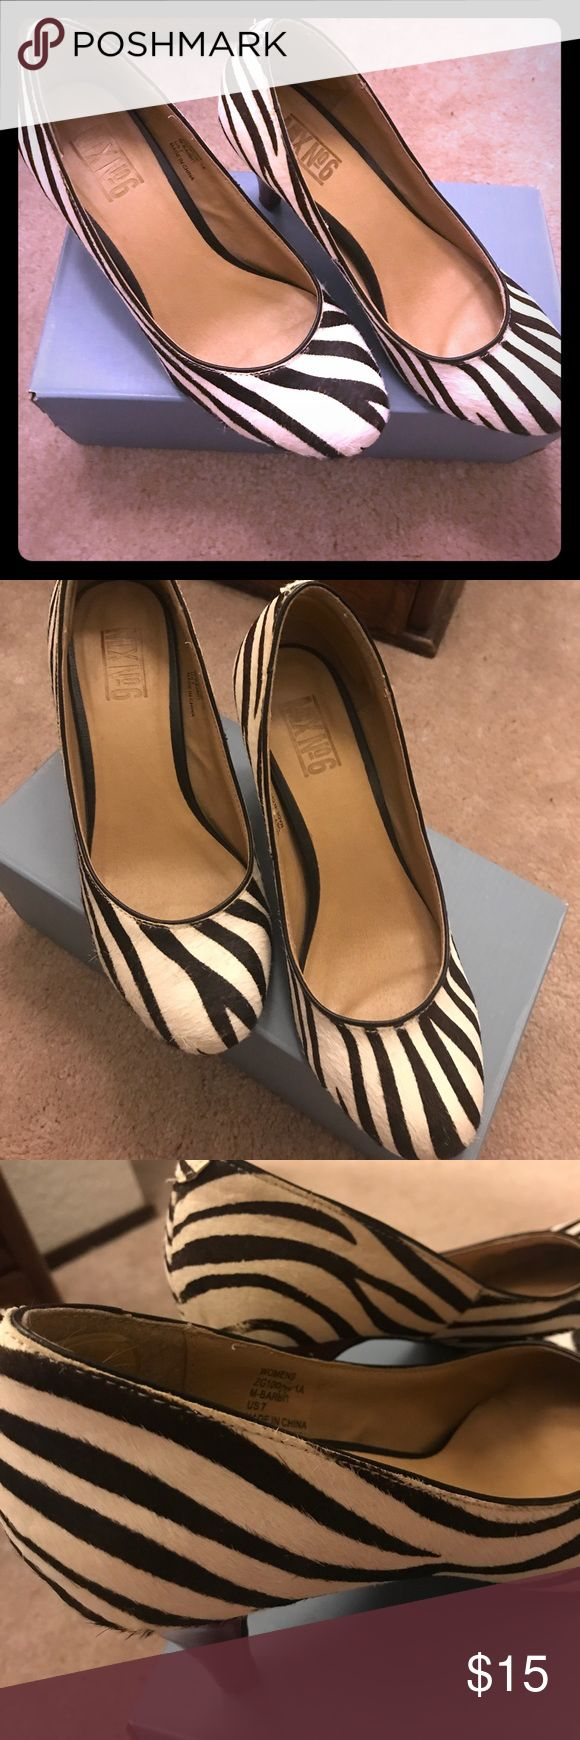 Adorable zebra heels 😍❤️ Wonderful condition! Cute zebra hair print. Nice sized heel. Little love on soles and heel as picture. Size 7! ❤️😊 Mix No. 6 Shoes Heels